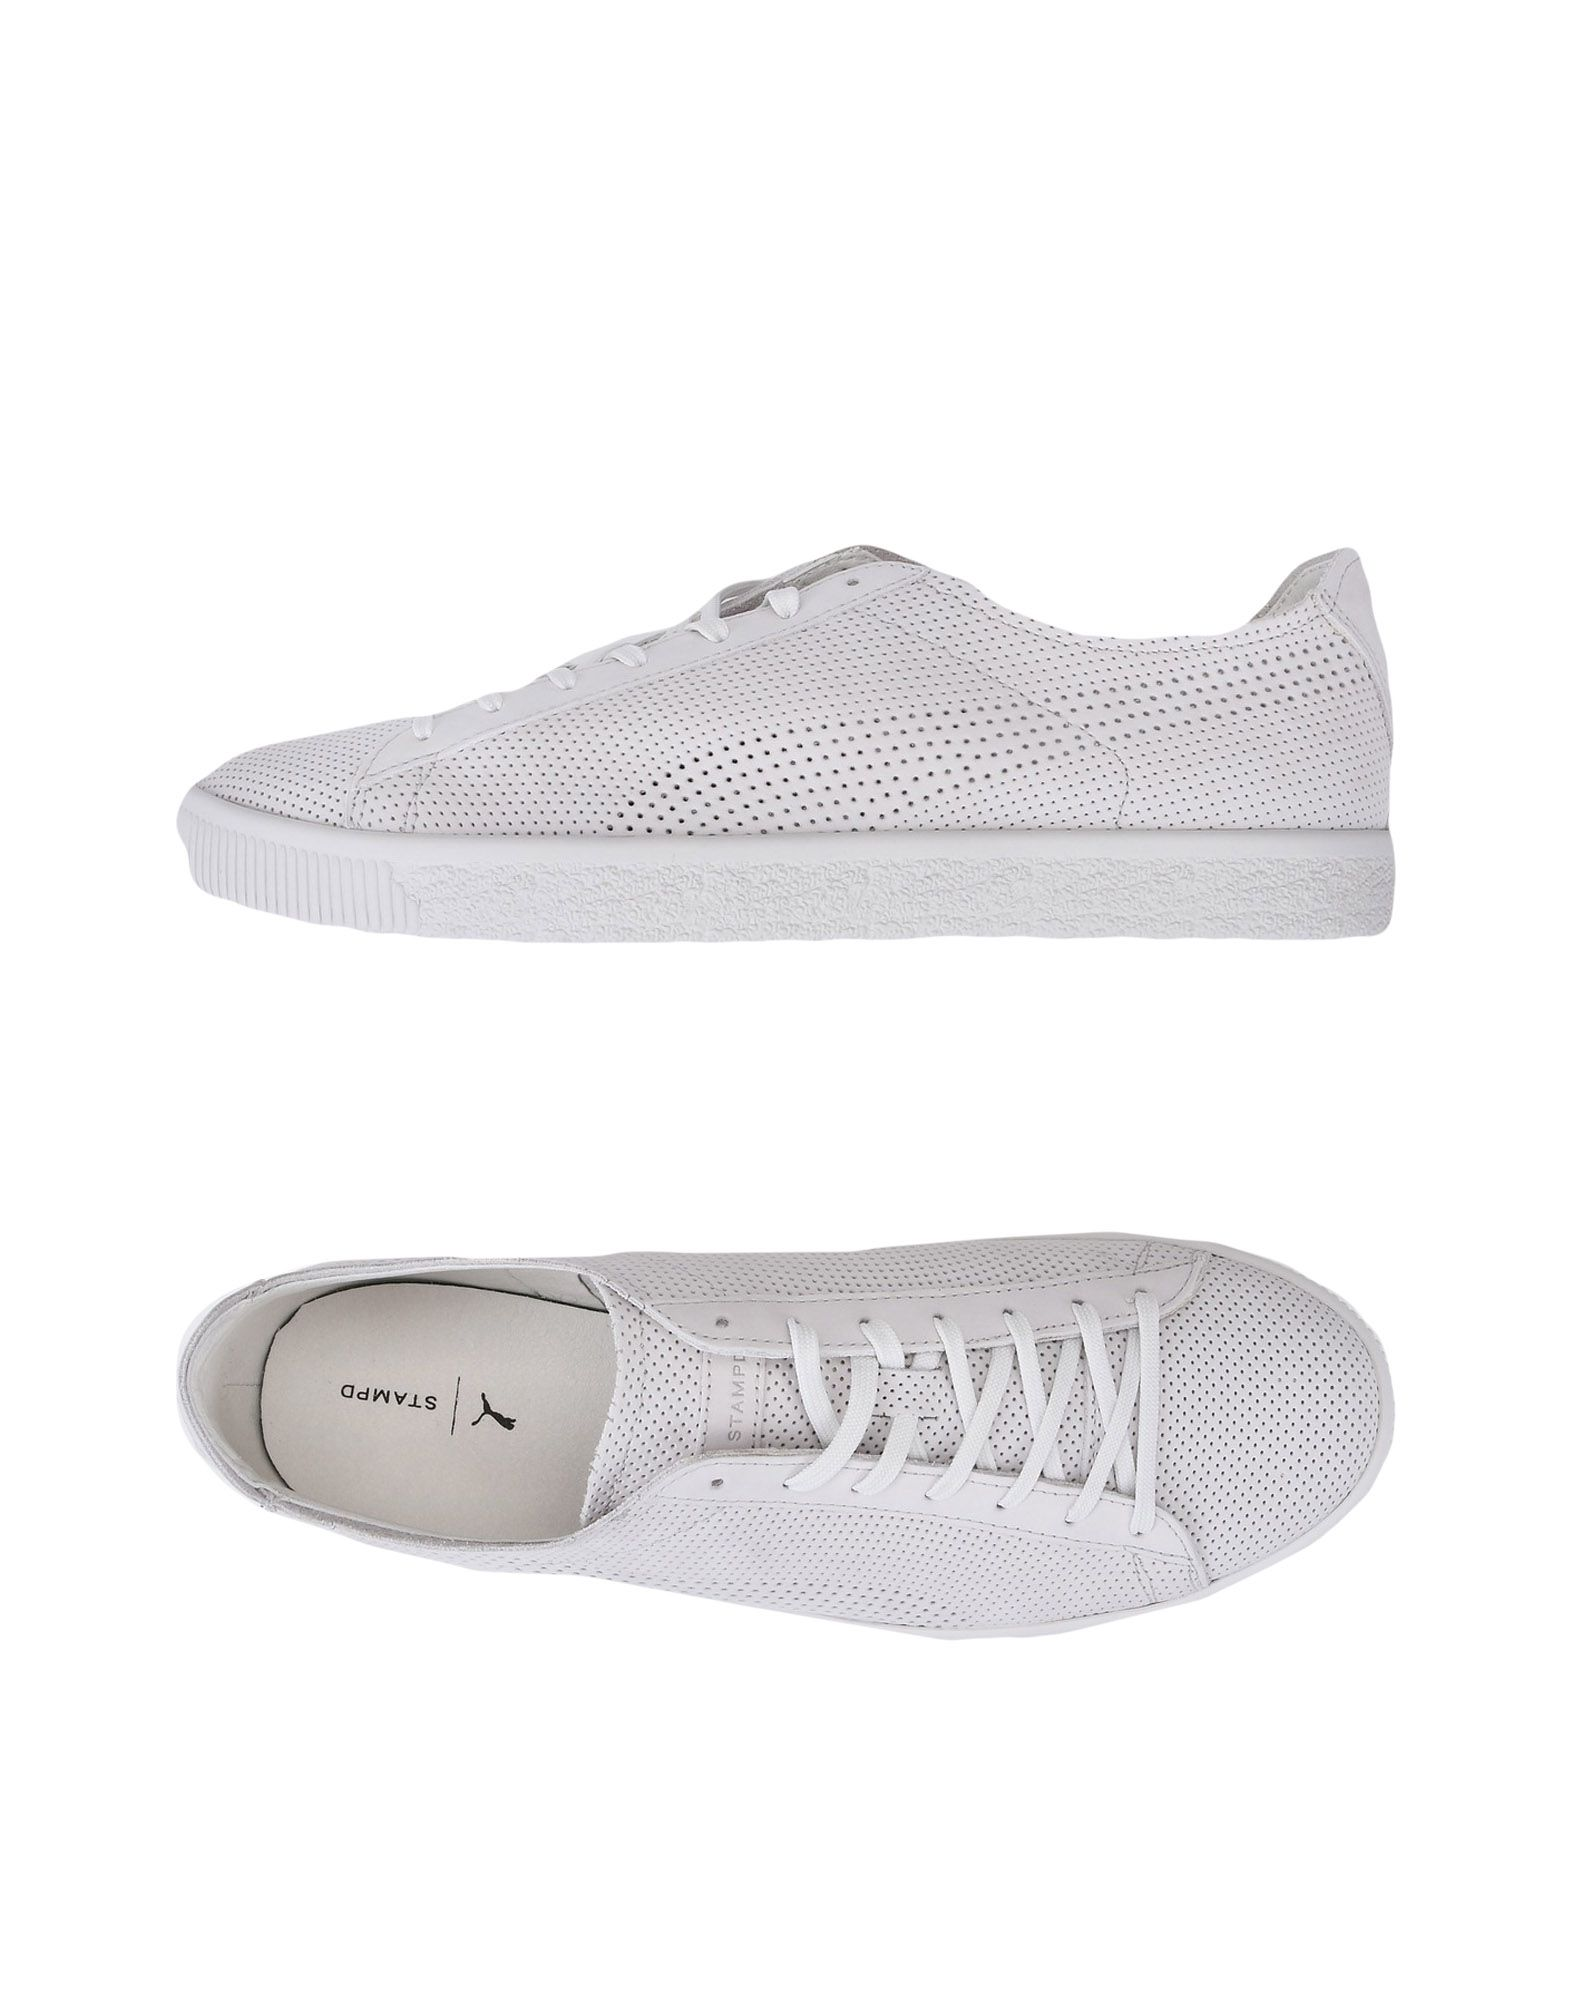 Sneakers Stampd X Puma Puma X Stampd Clyde - Uomo - 11219274OW